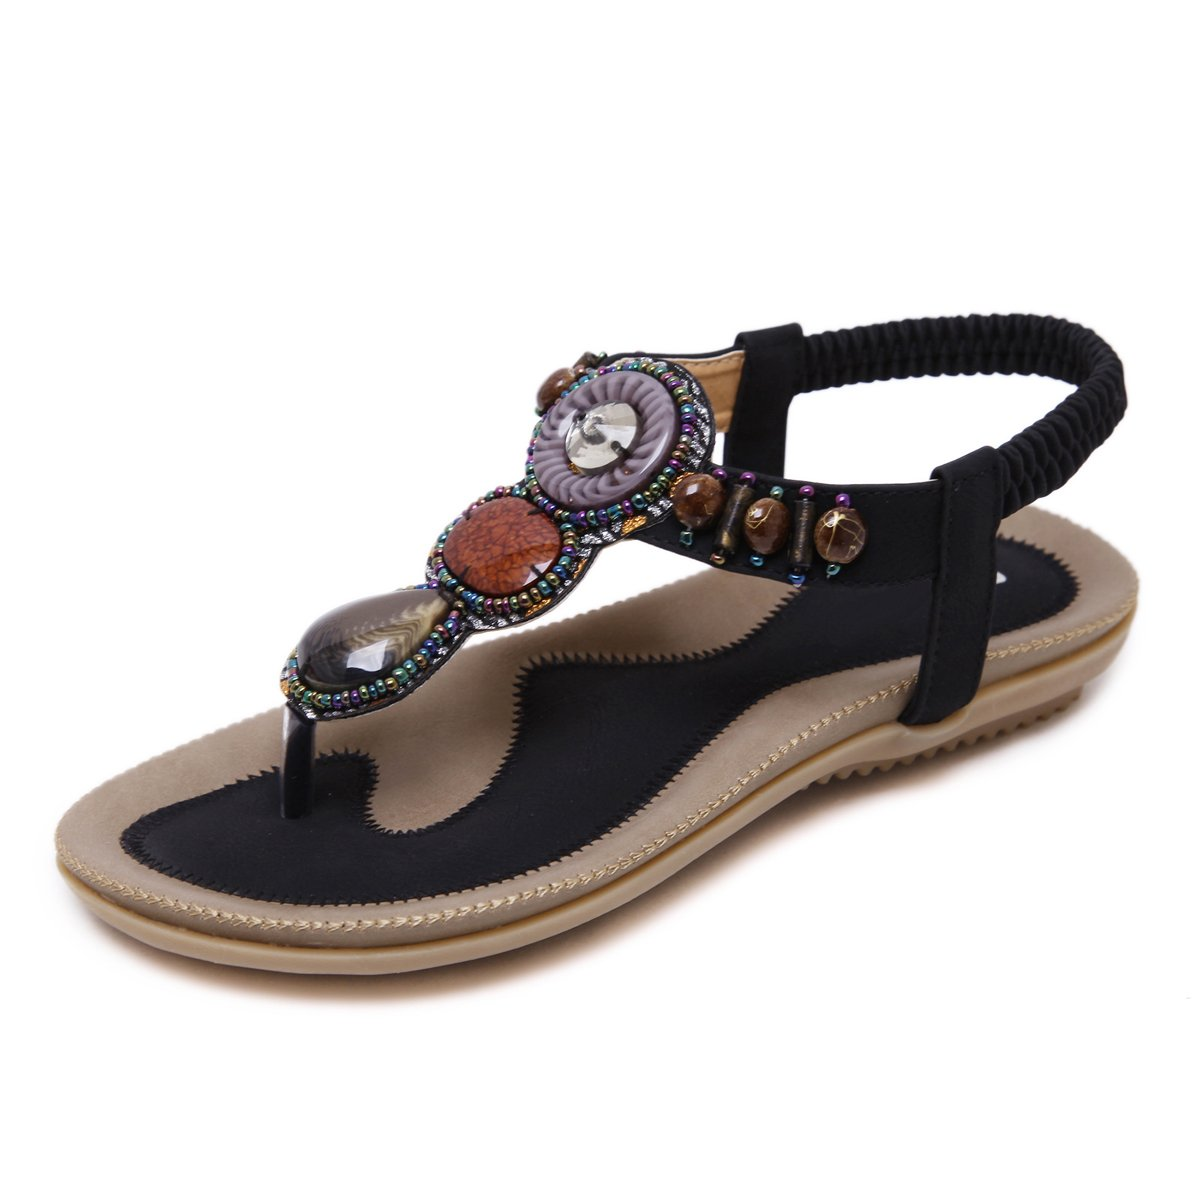 VFDB Women's Thong Flat Sandals T-Strap Summer Bohemian Rhinestone Slingback Beach Flip Flops Shoes Black US 7.5